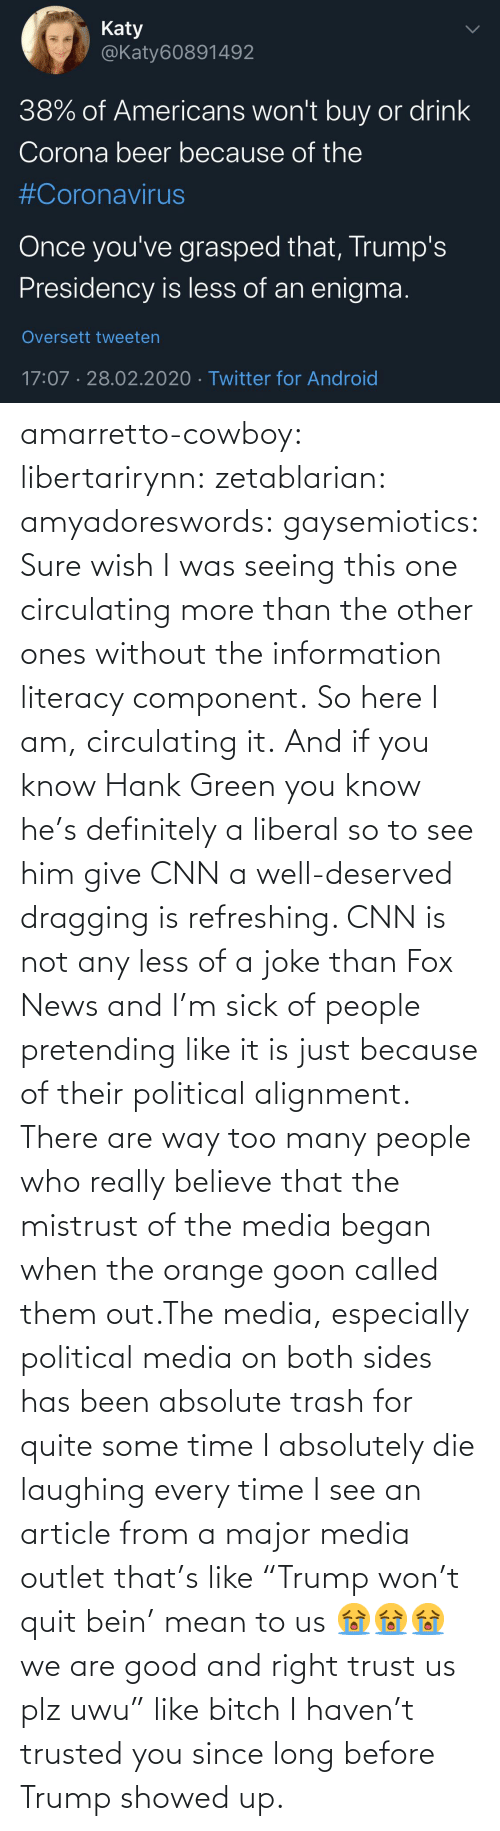 "cnn.com, Definitely, and News: amarretto-cowboy:  libertarirynn:  zetablarian:  amyadoreswords:   gaysemiotics:       Sure wish I was seeing this one circulating more than the other ones without the information literacy component. So here I am, circulating it.    And if you know Hank Green you know he's definitely a liberal so to see him give CNN a well-deserved dragging is refreshing. CNN is not any less of a joke than Fox News and I'm sick of people pretending like it is just because of their political alignment.   There are way too many people who really believe that the mistrust of the media began when the orange goon called them out.The media, especially political media on both sides has been absolute trash for quite some time   I absolutely die laughing every time I see an article from a major media outlet that's like ""Trump won't quit bein' mean to us 😭😭😭 we are good and right trust us plz uwu"" like bitch I haven't trusted you since long before Trump showed up."